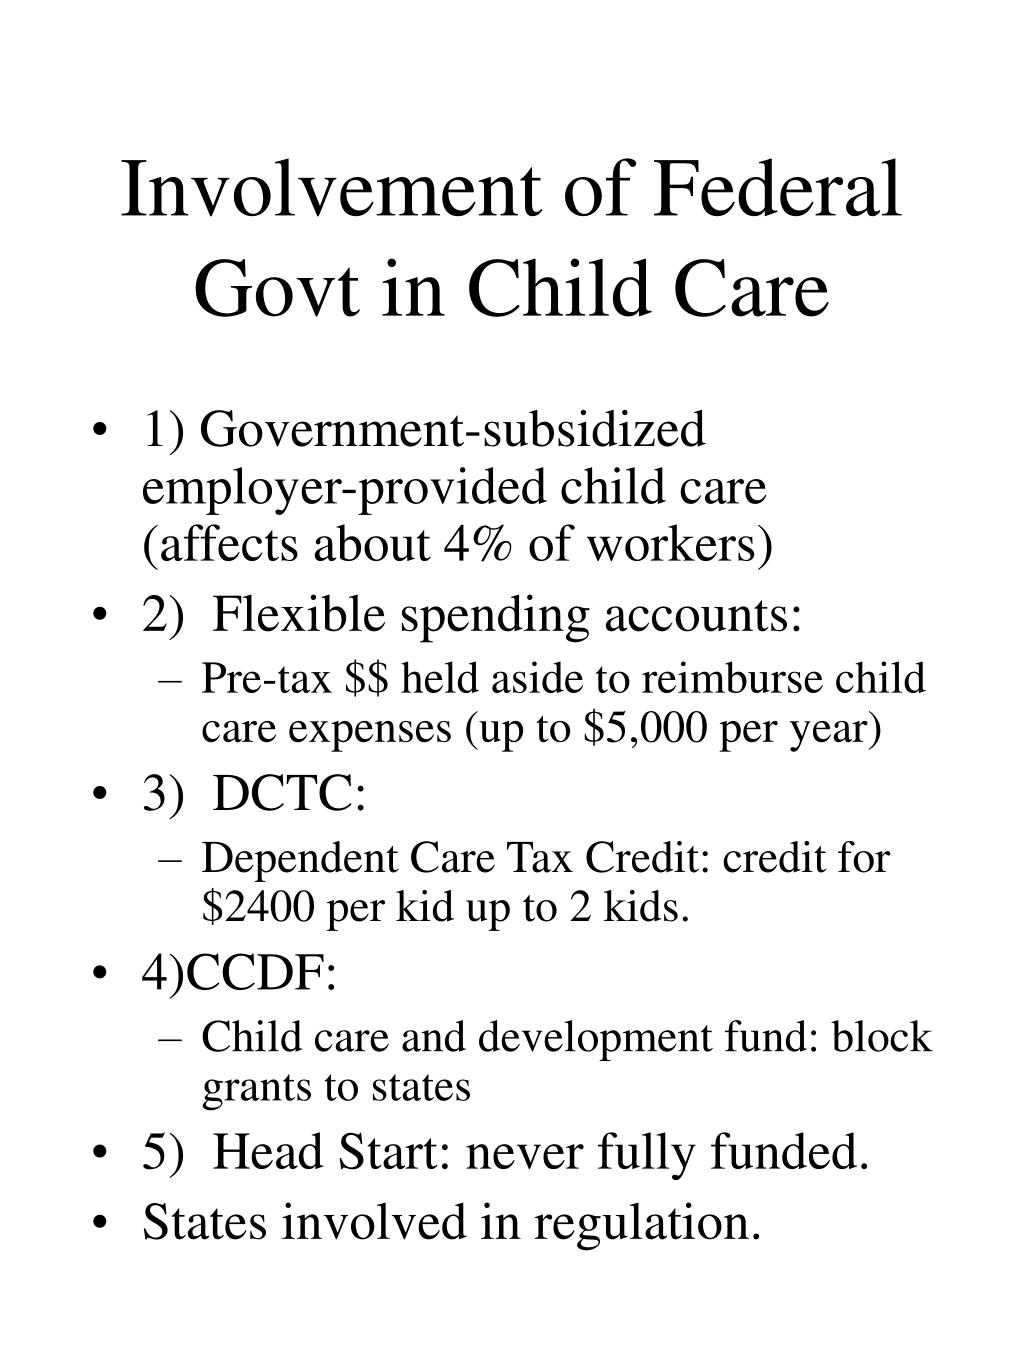 Involvement of Federal Govt in Child Care